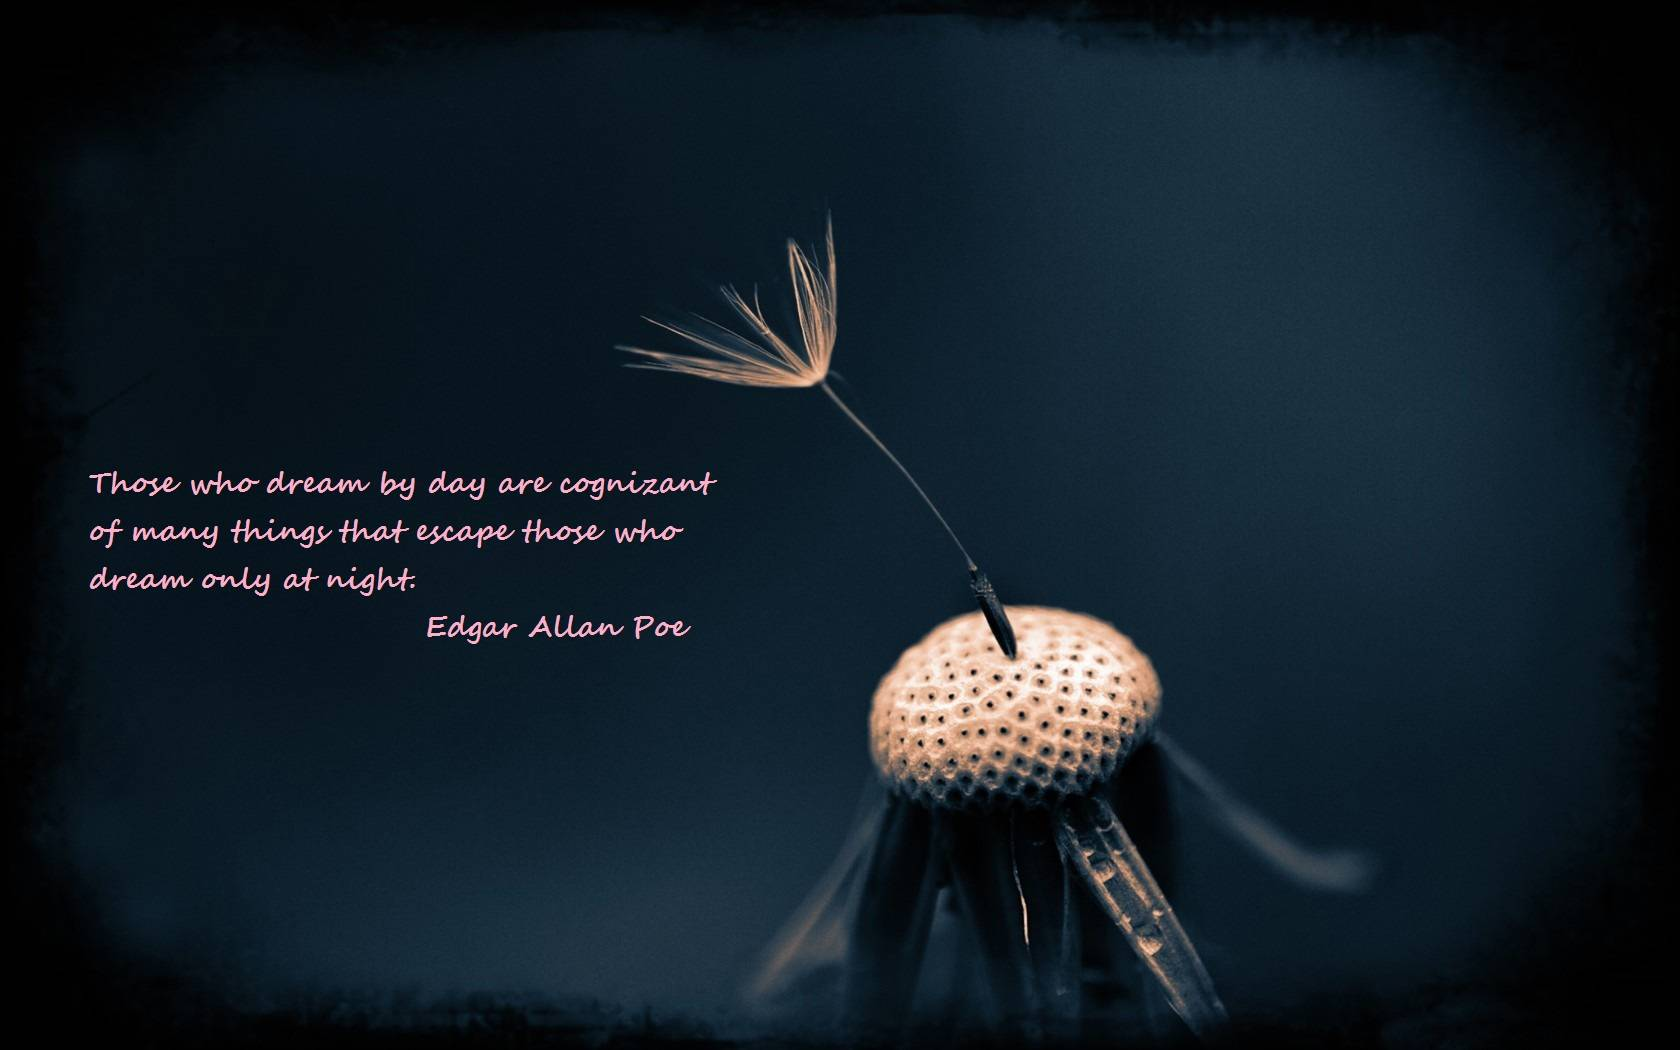 Edgar Allan Poe Quotes 3 A picture of Edgar Allan Poe along with a 1680x1050